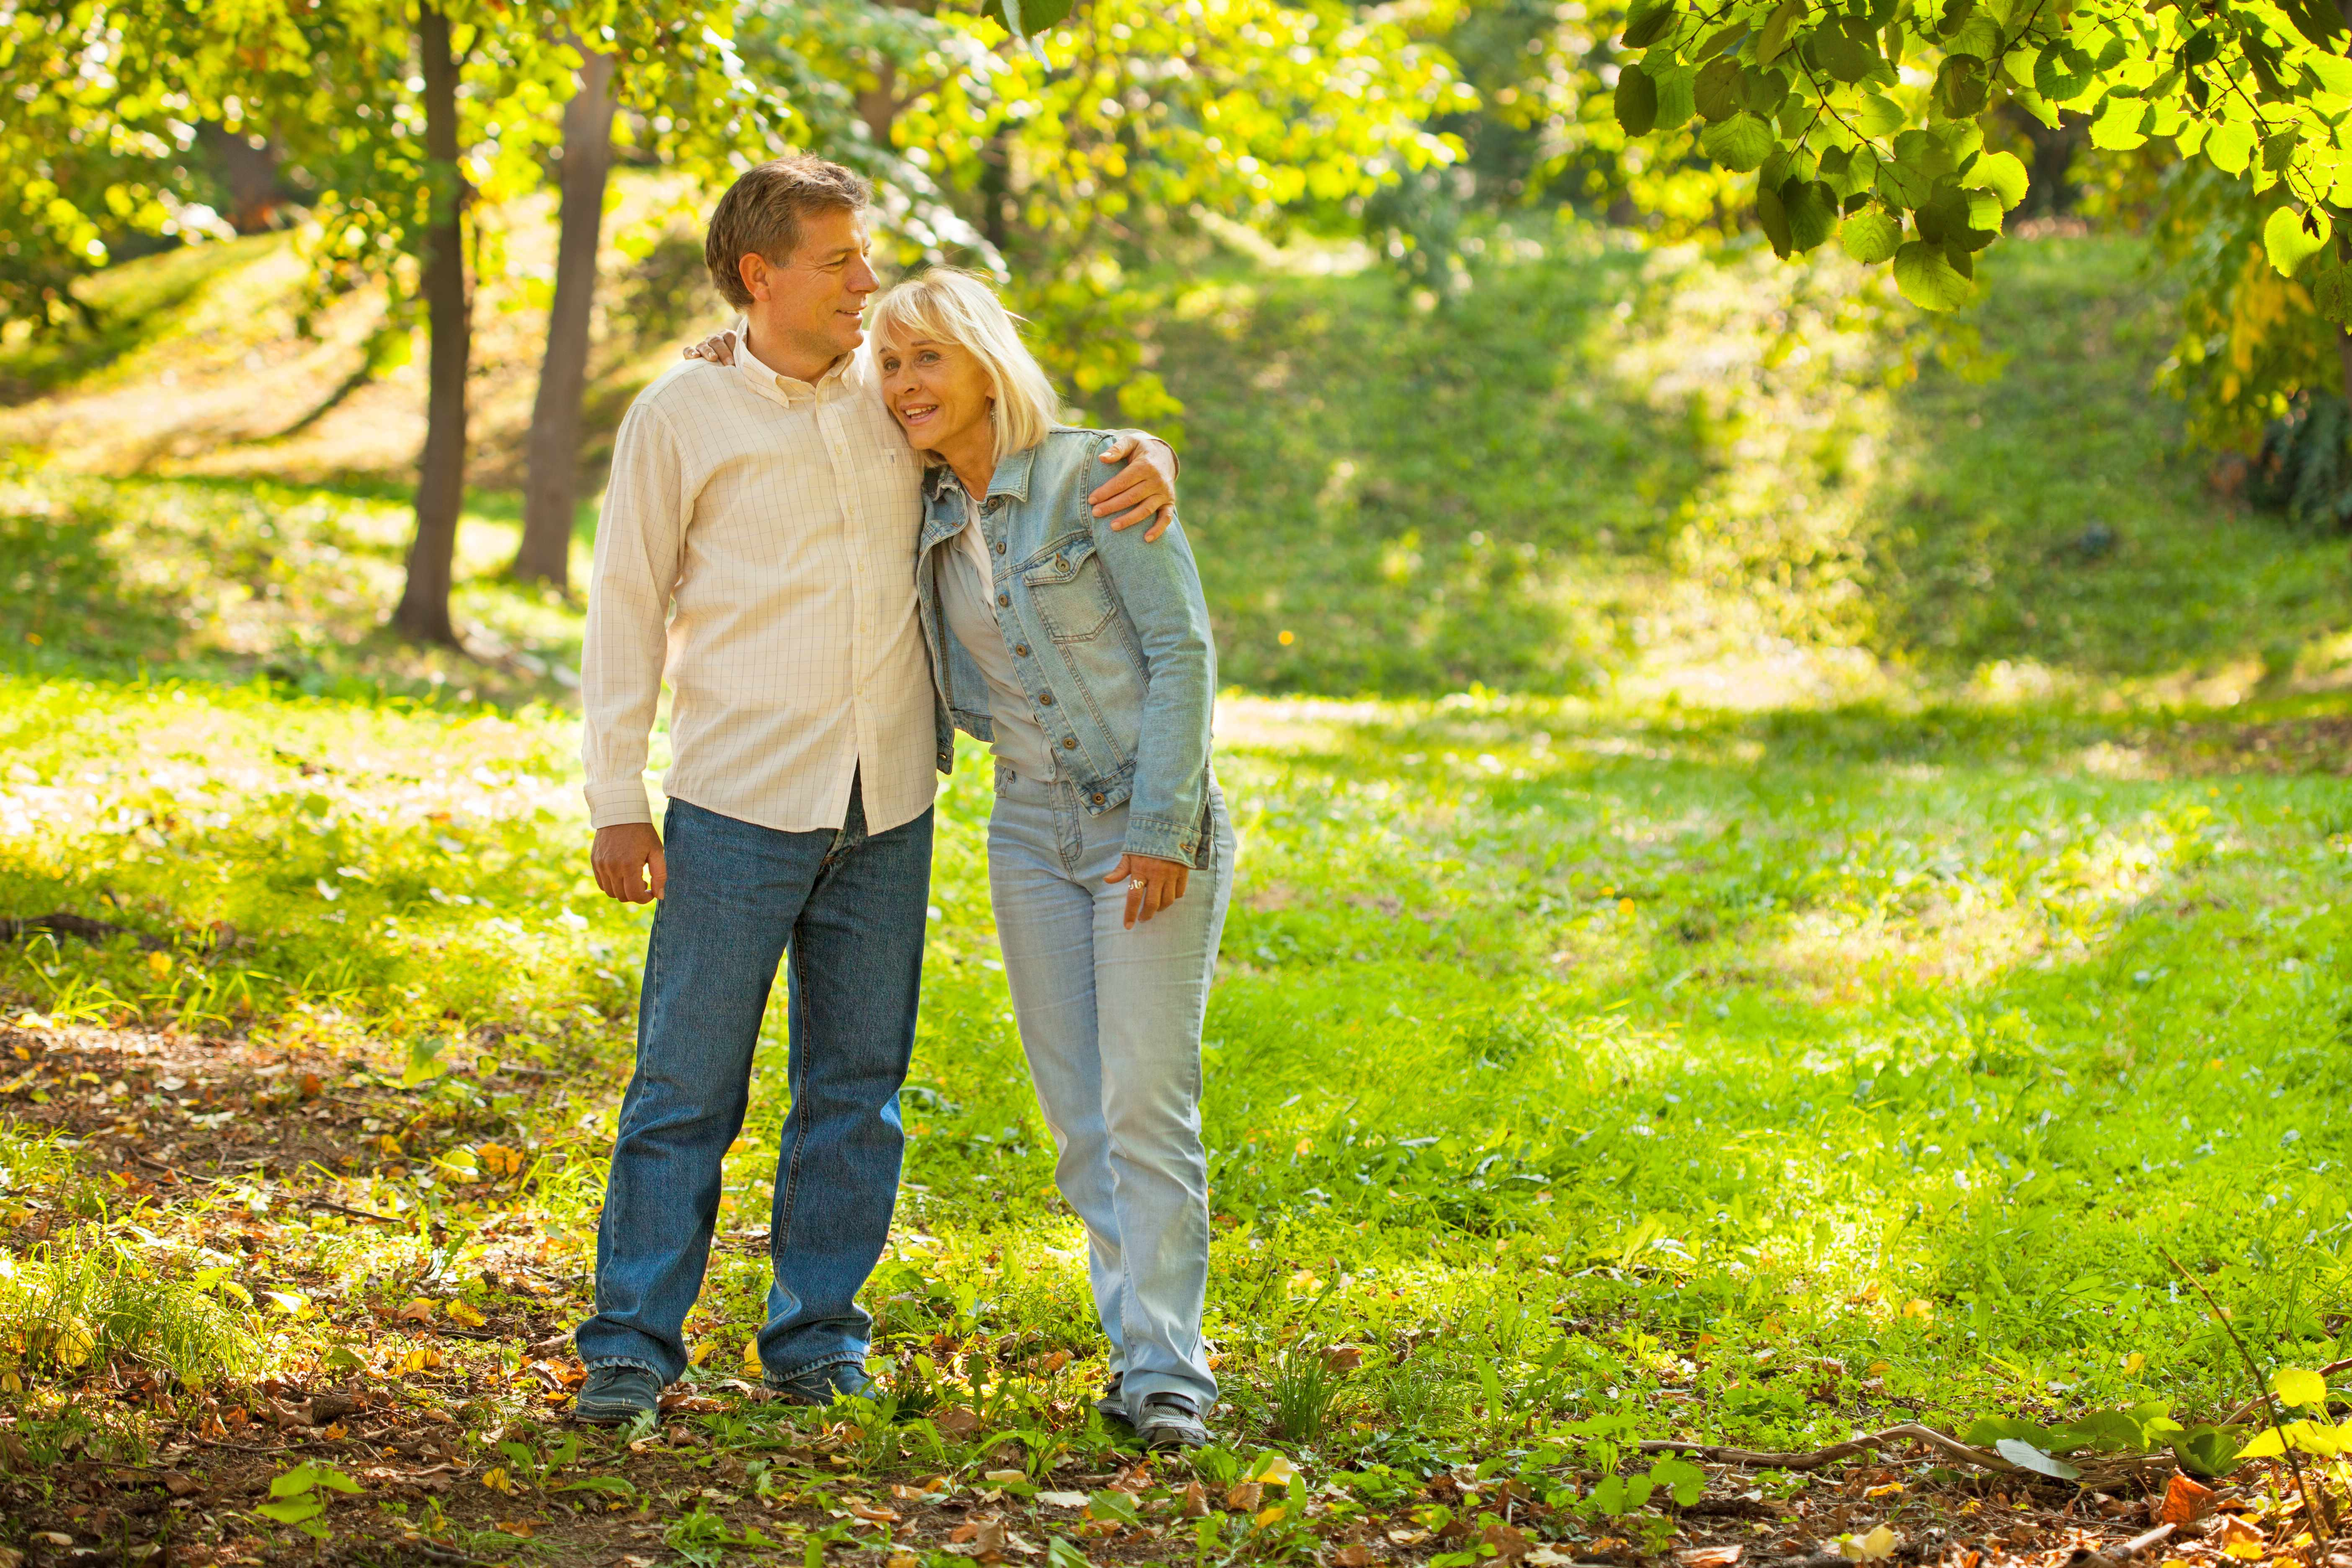 middle aged couple walking in a park together, arm in arm